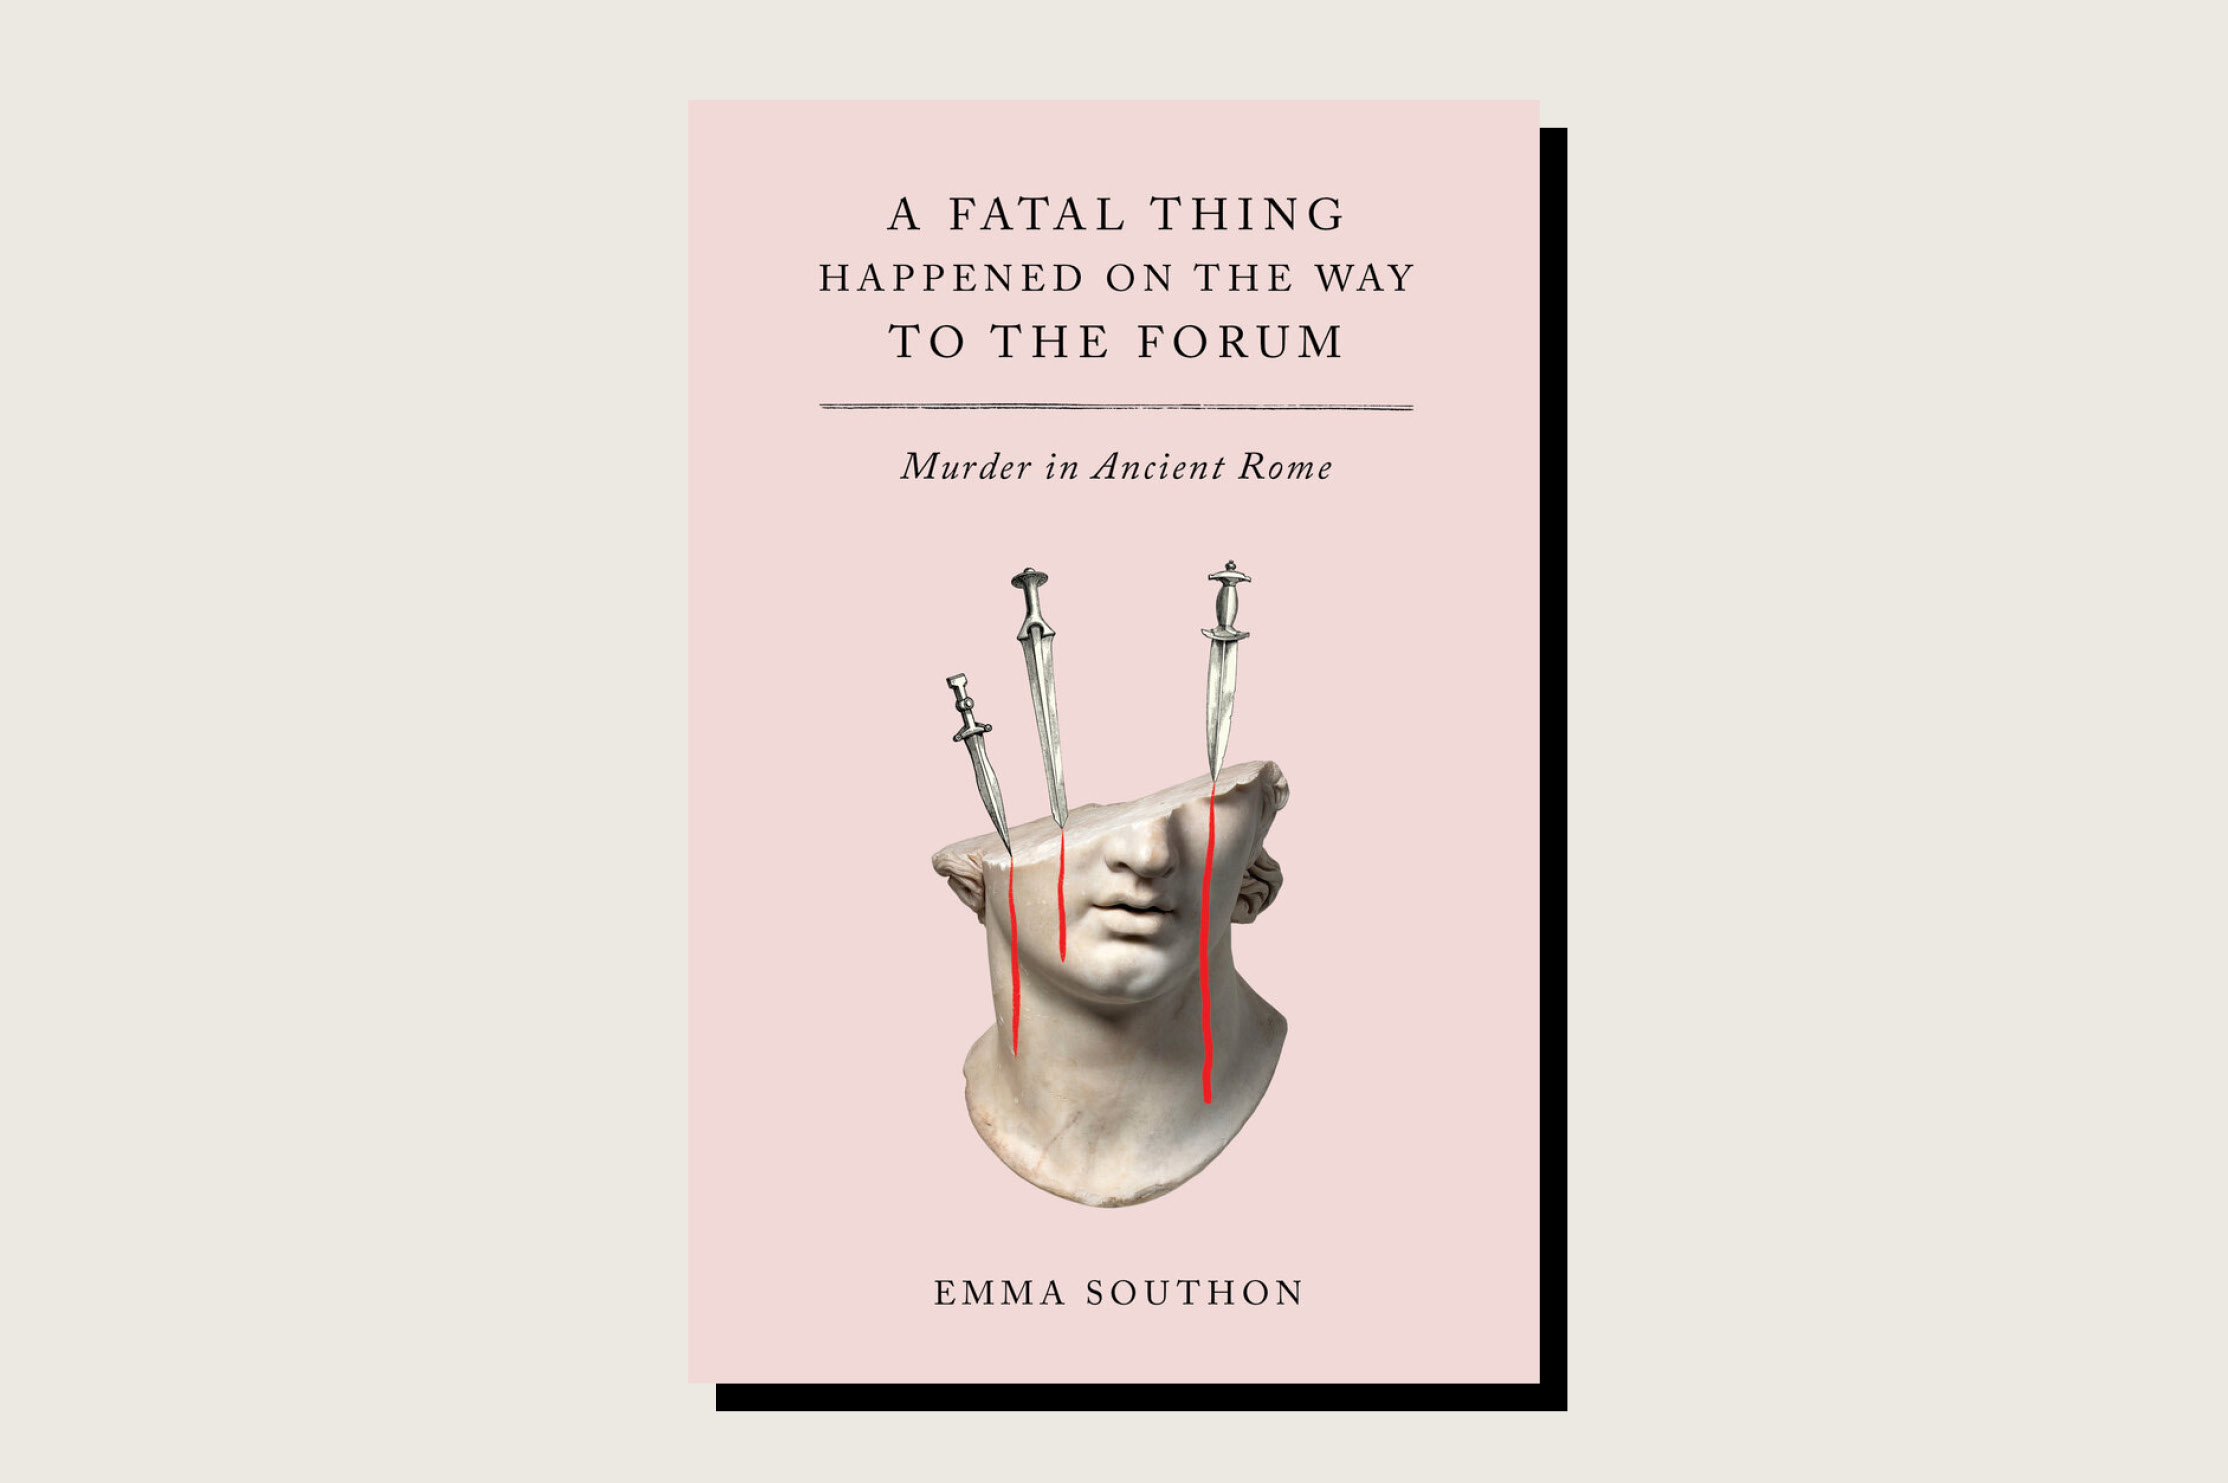 A Fatal Thing Happened On the Way to the Forum: Murder in Ancient Rome, Emma Southon, Abrams Press, 352 pp., .00, March 2021